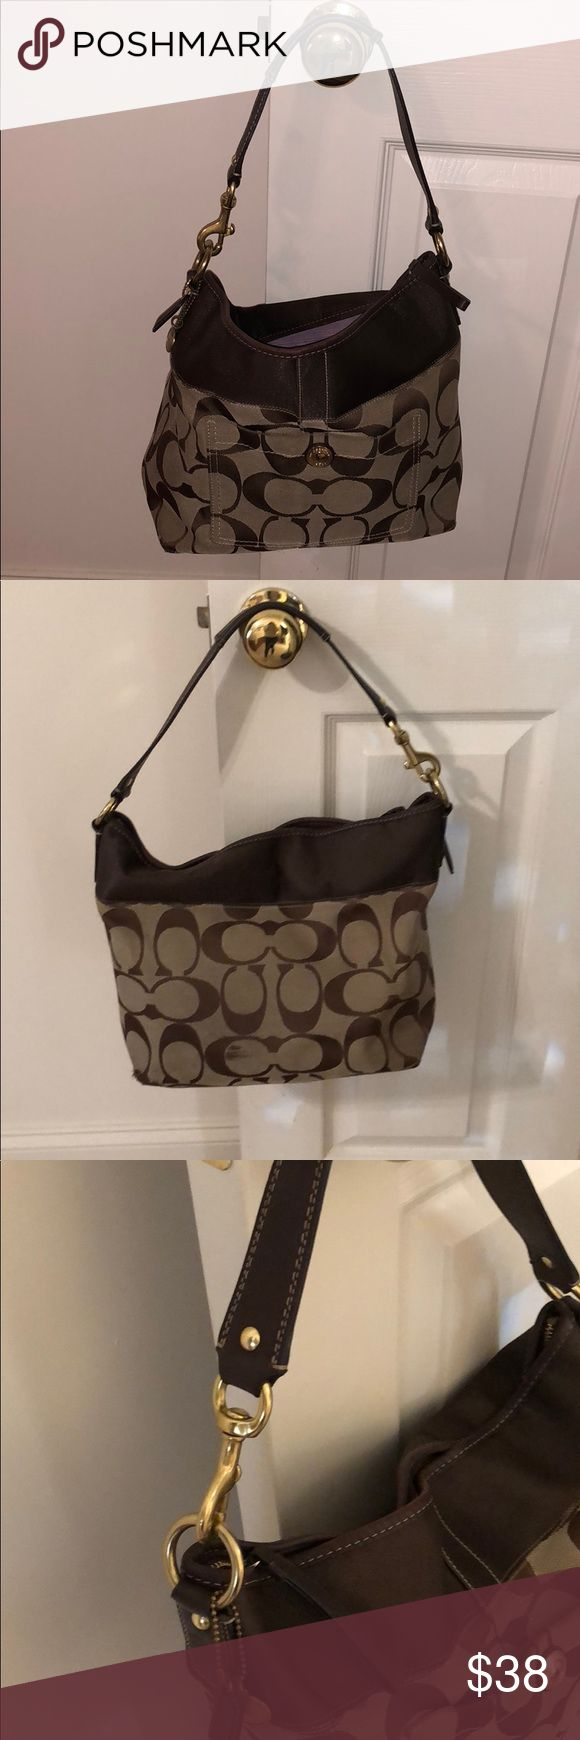 Coach Pocketbook Super cute coach pocketbook!  Has some wear on the back of the bag and some ink marks on the inside. 🌺 Coach Bags Shoulder Bags